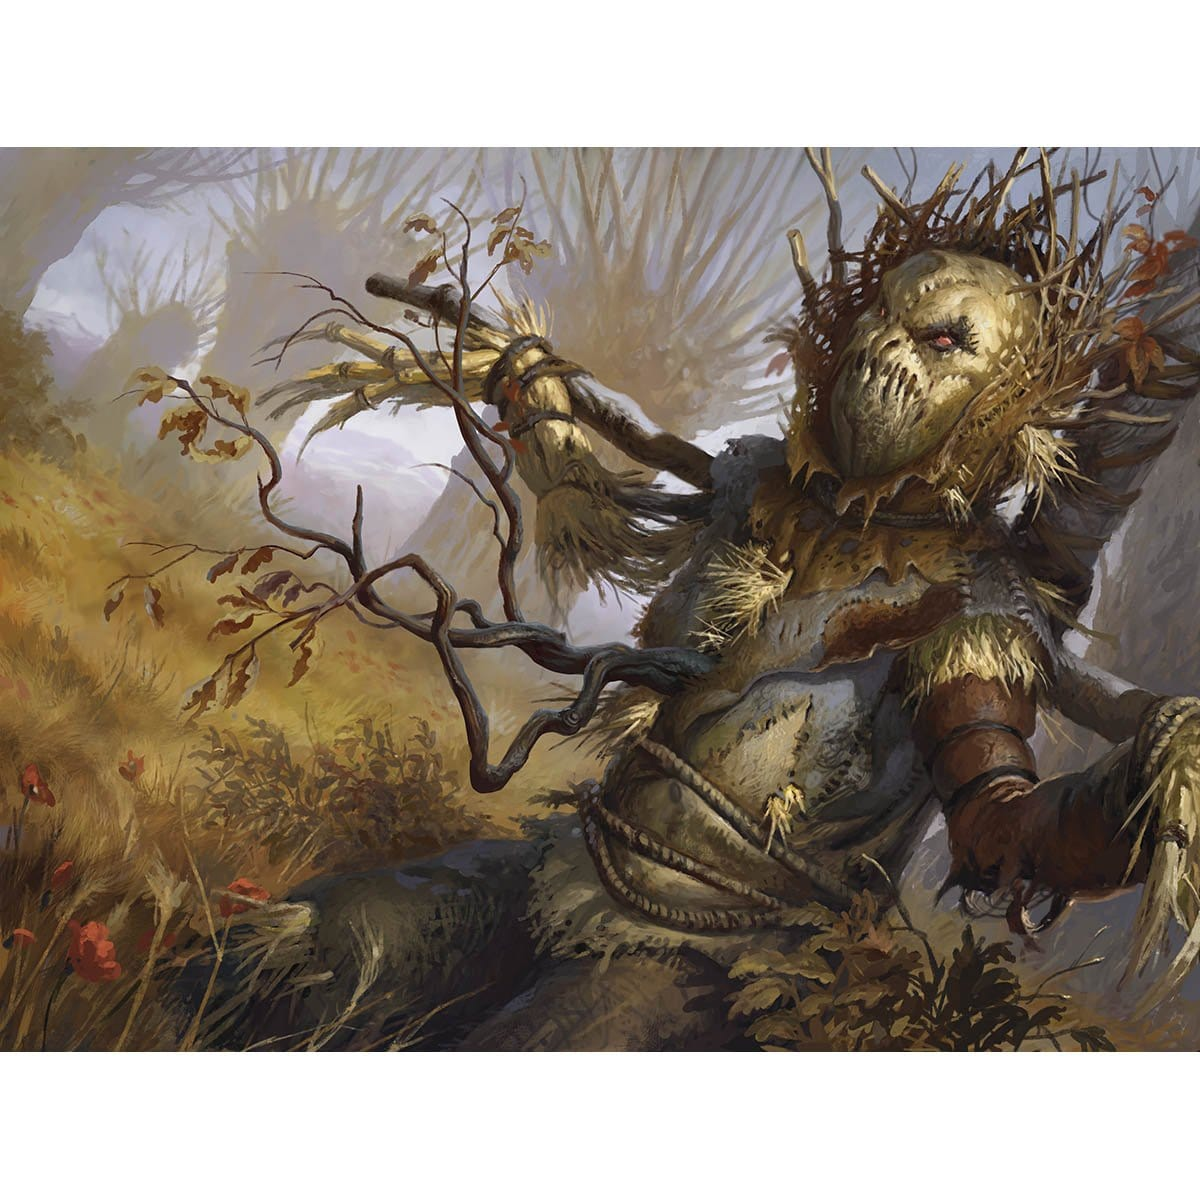 Wild-Field Scarecrow Print - Print - Original Magic Art - Accessories for Magic the Gathering and other card games